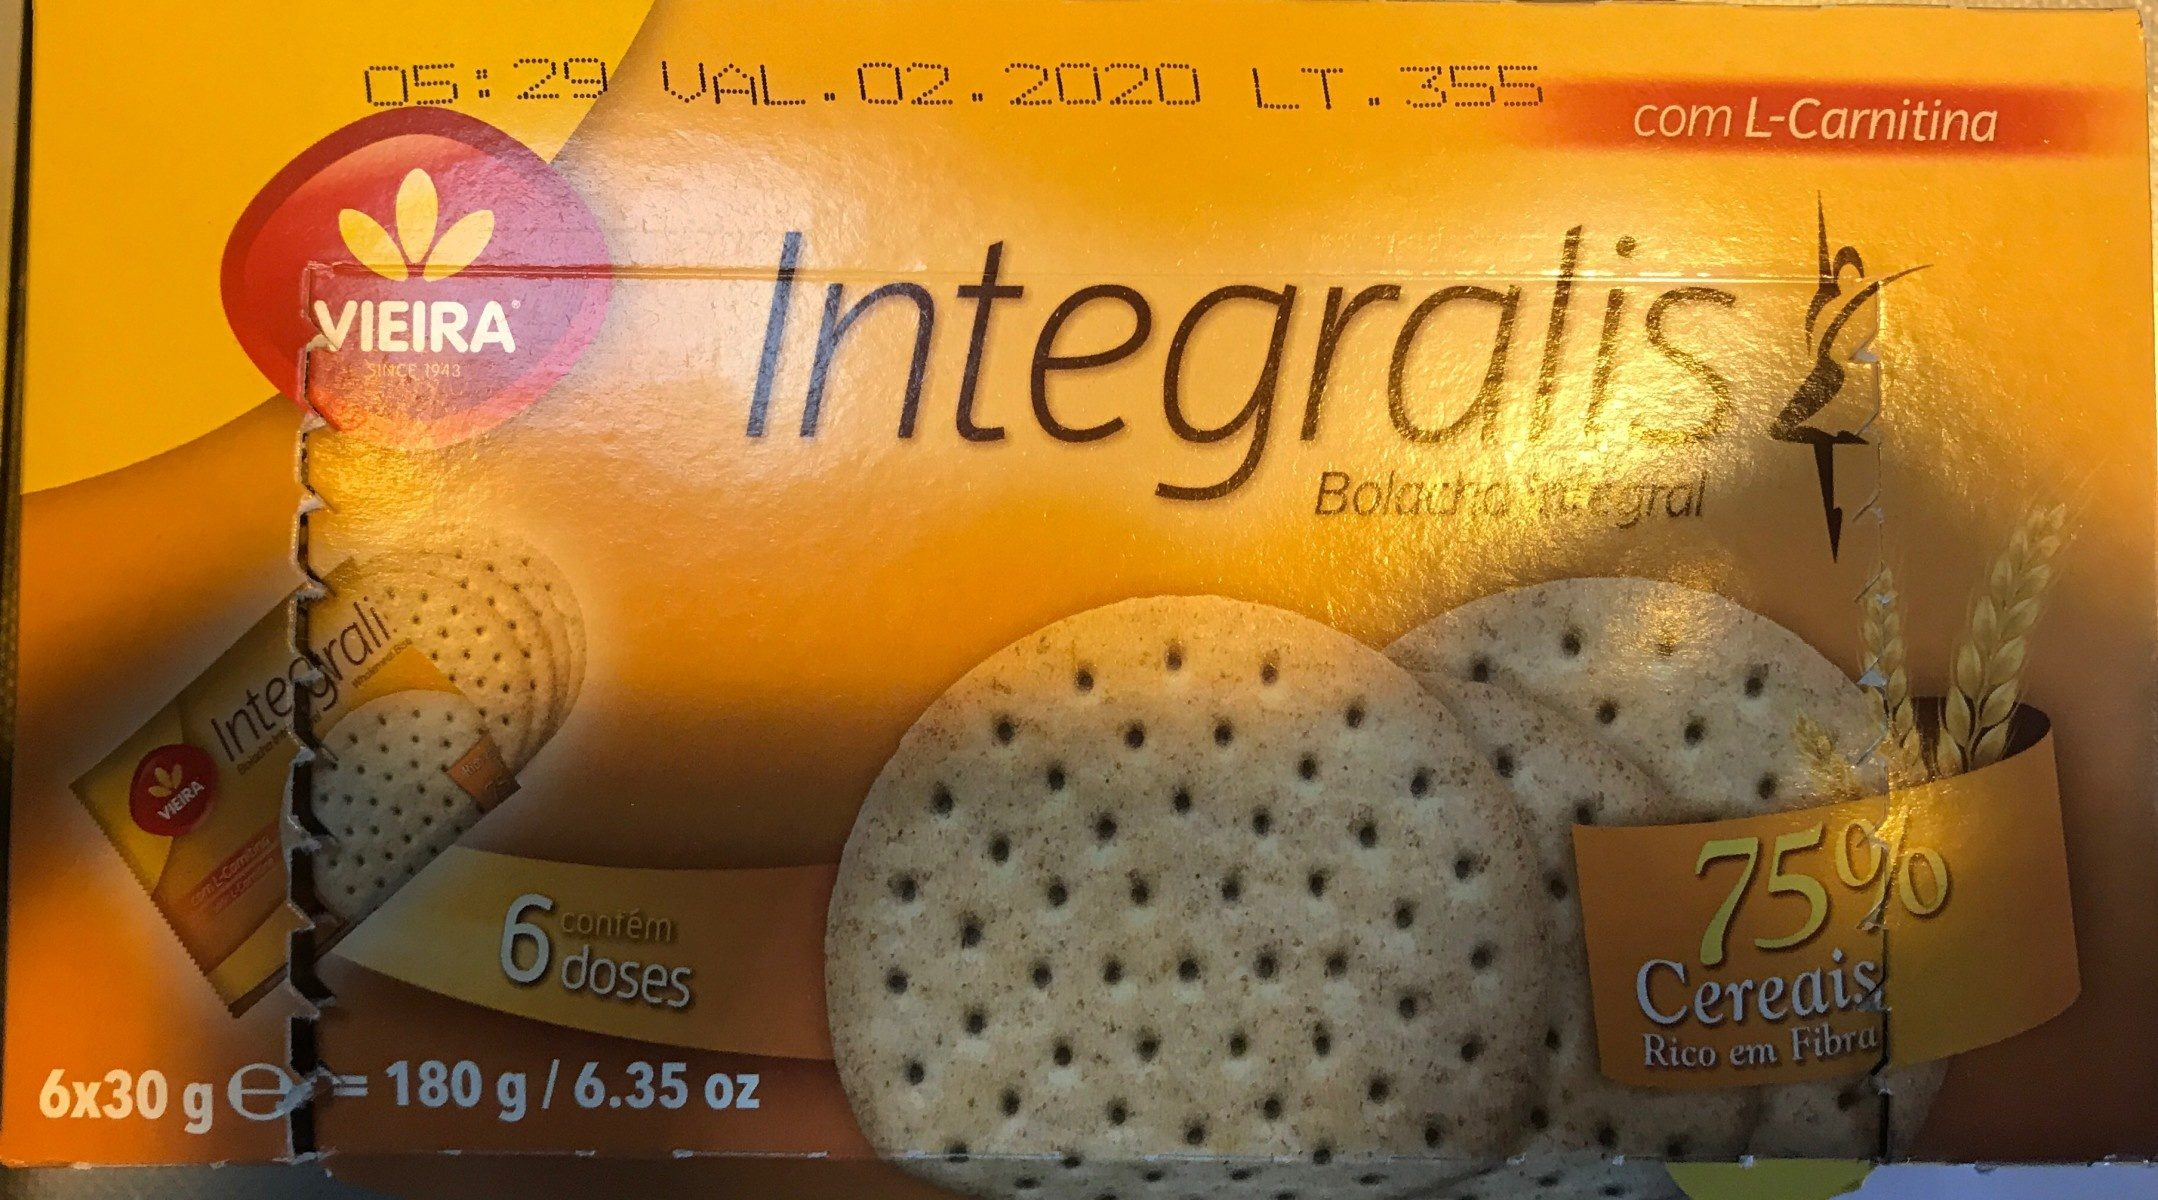 Vieira Integralis Biscuits 175 - Product - fr